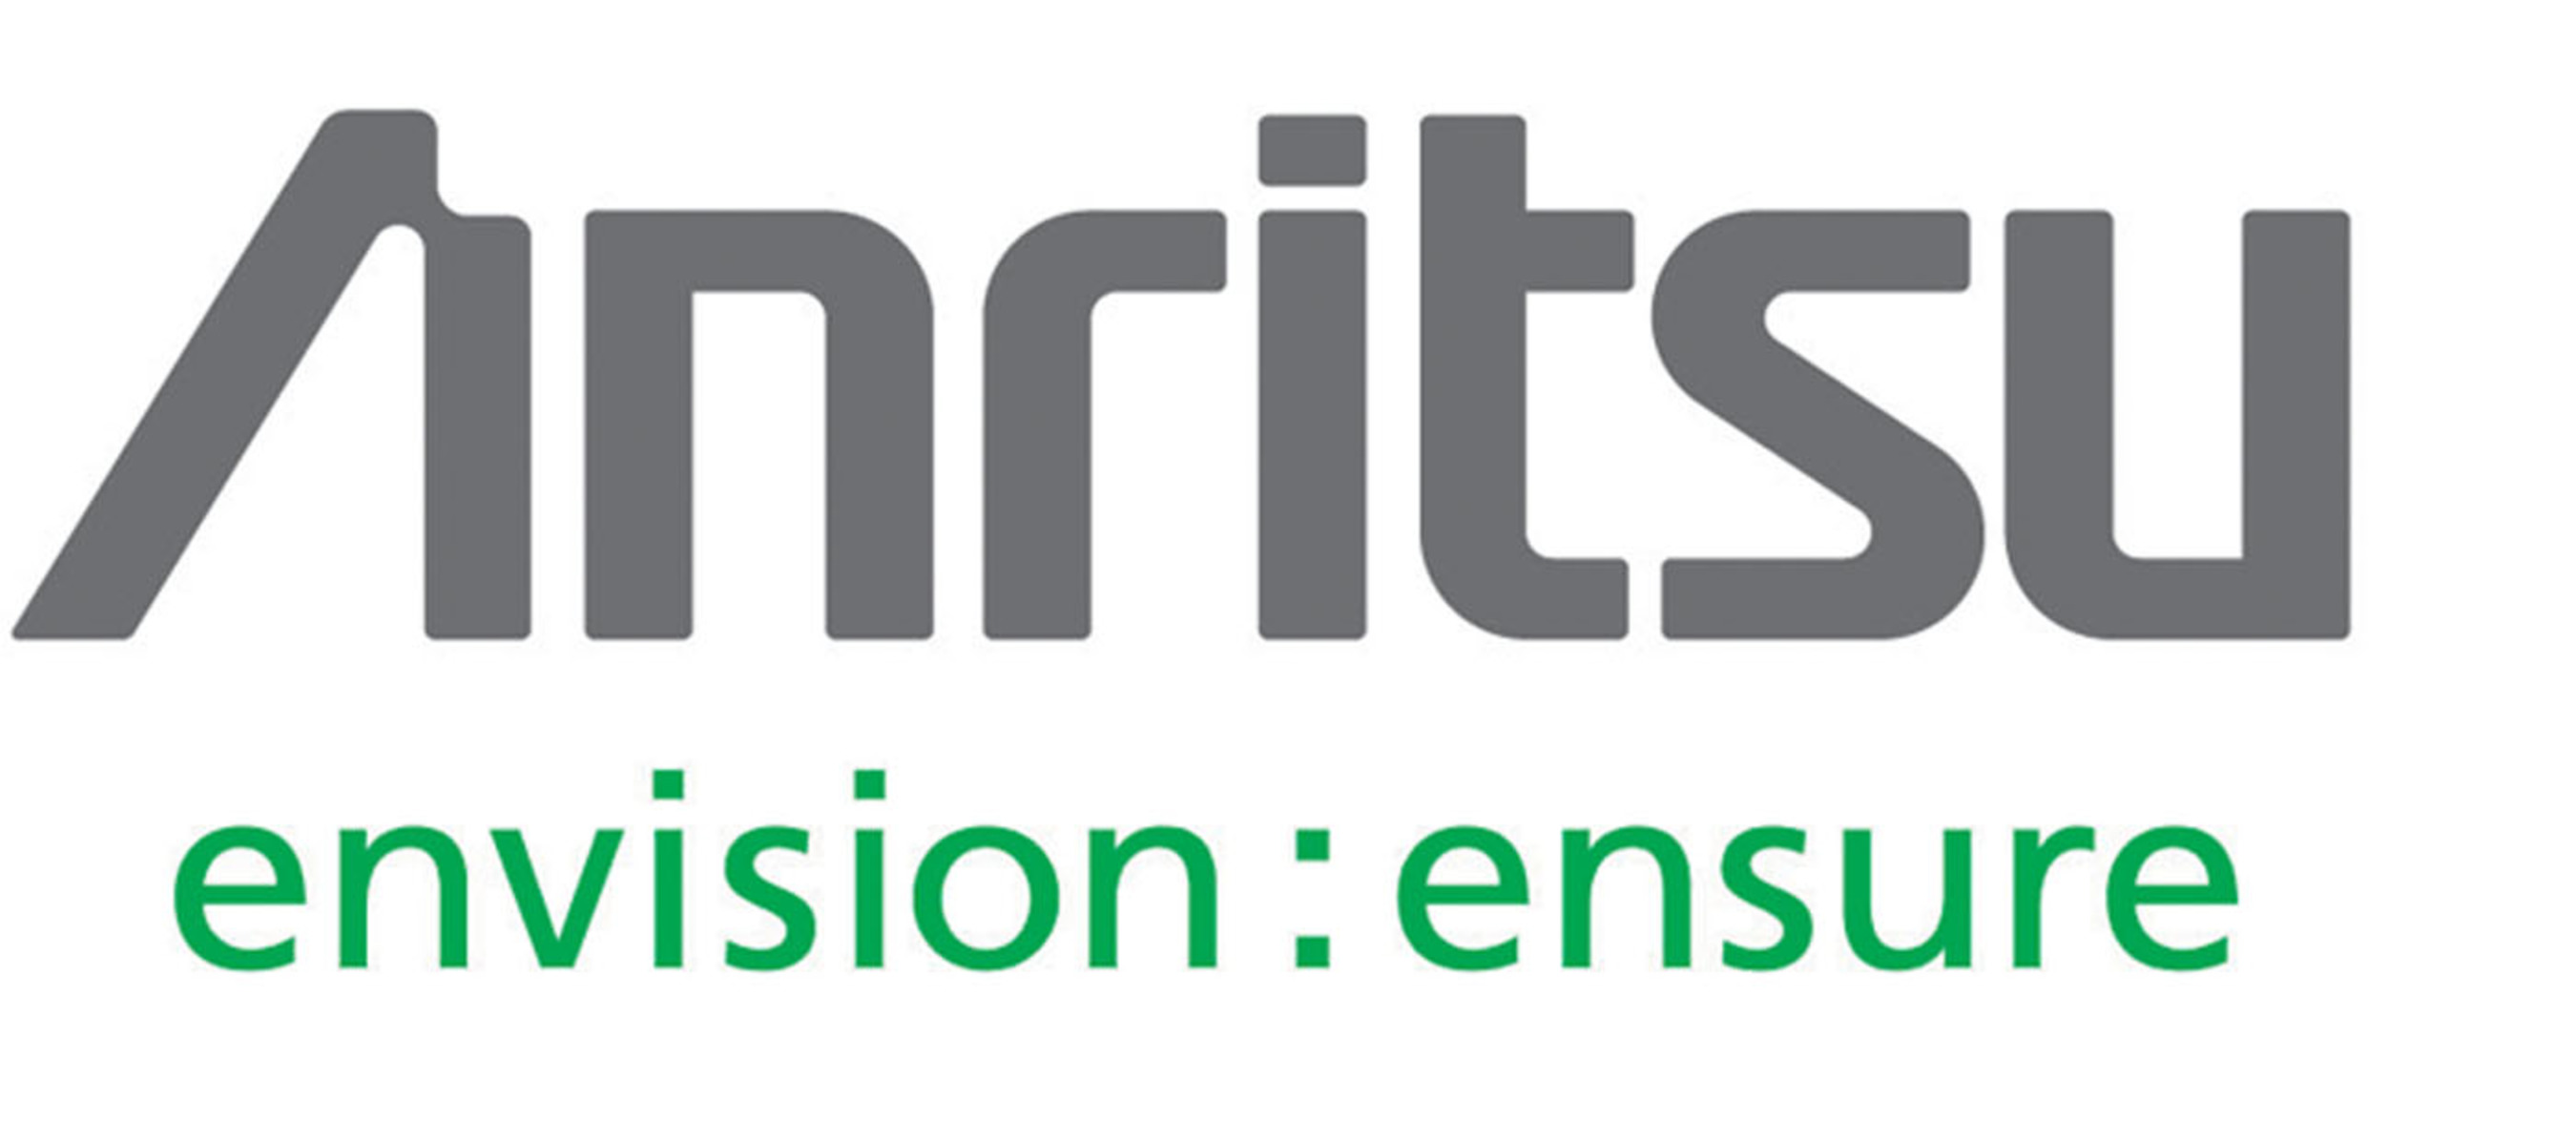 Samtec to Demonstrate 28 Gbps FireFly'' with Anritsu MP1800A BERT at OFC 2015